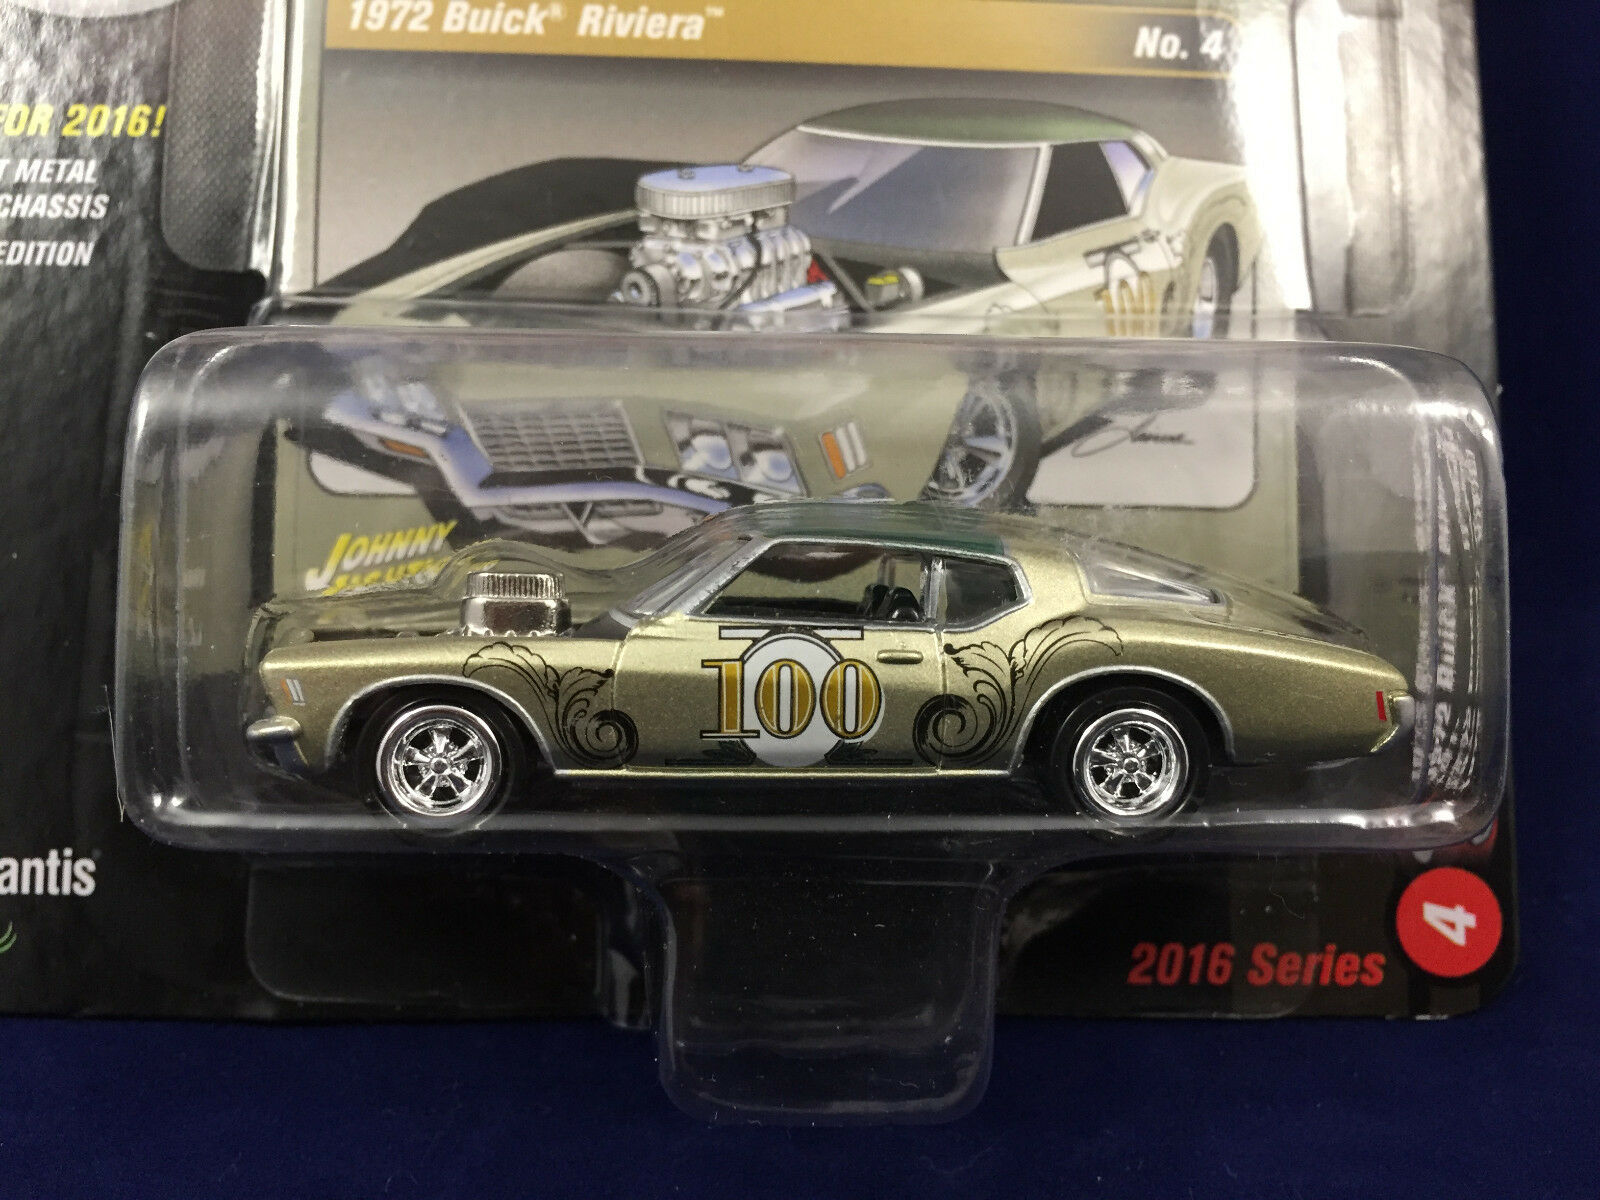 Johnny Lightning 1972 Buick Riviera 2016 Series Street Freaks The